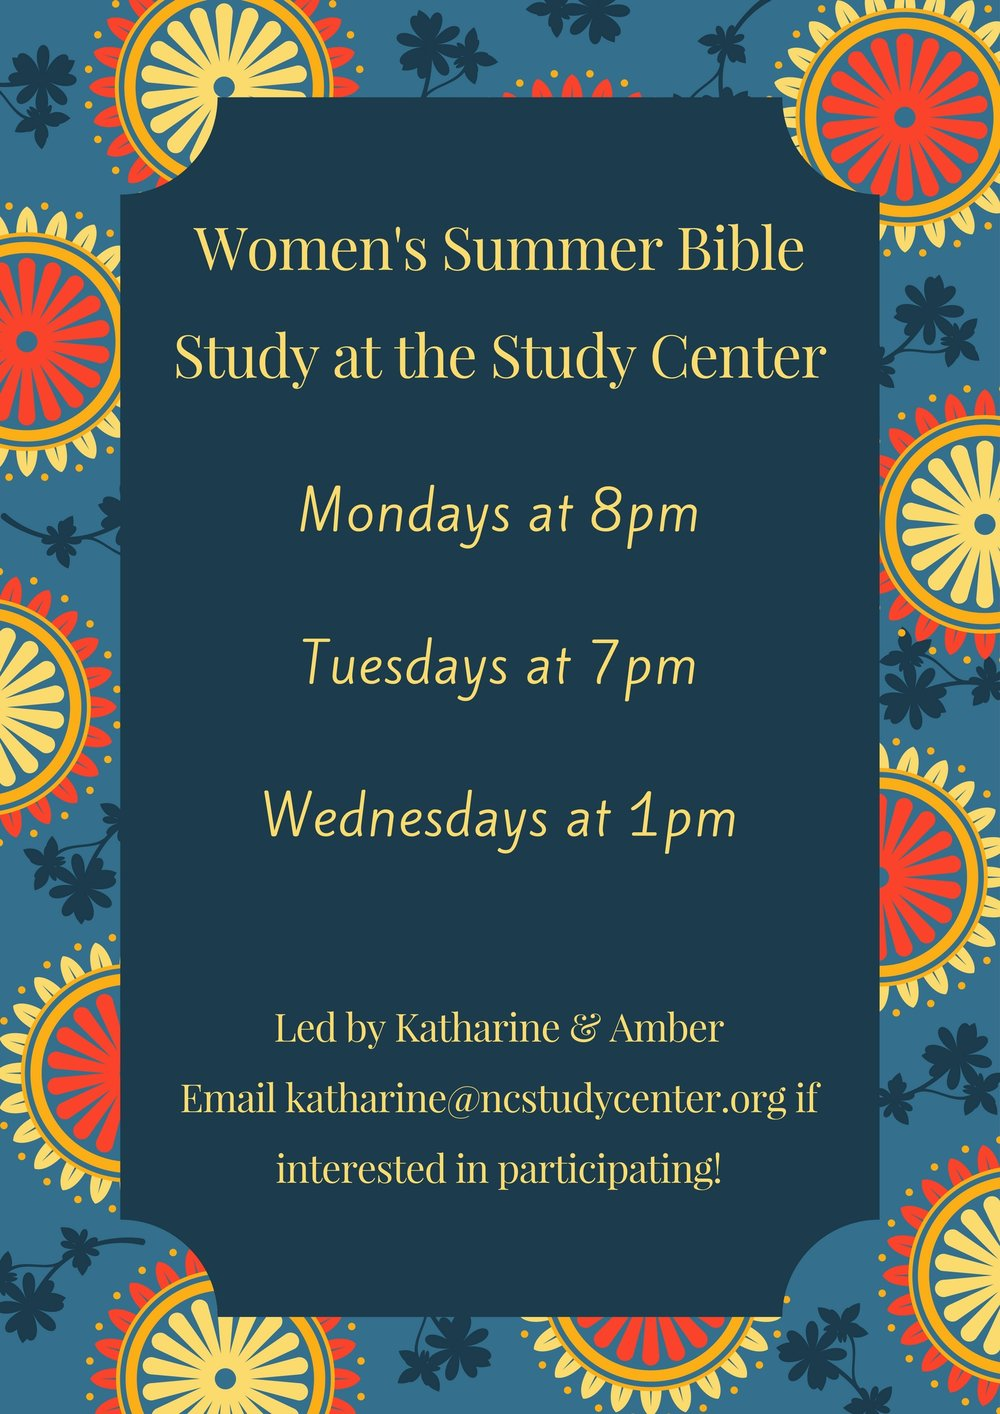 WOmen's Summer Bible StudyLed by Katharine and Amber (1).jpg